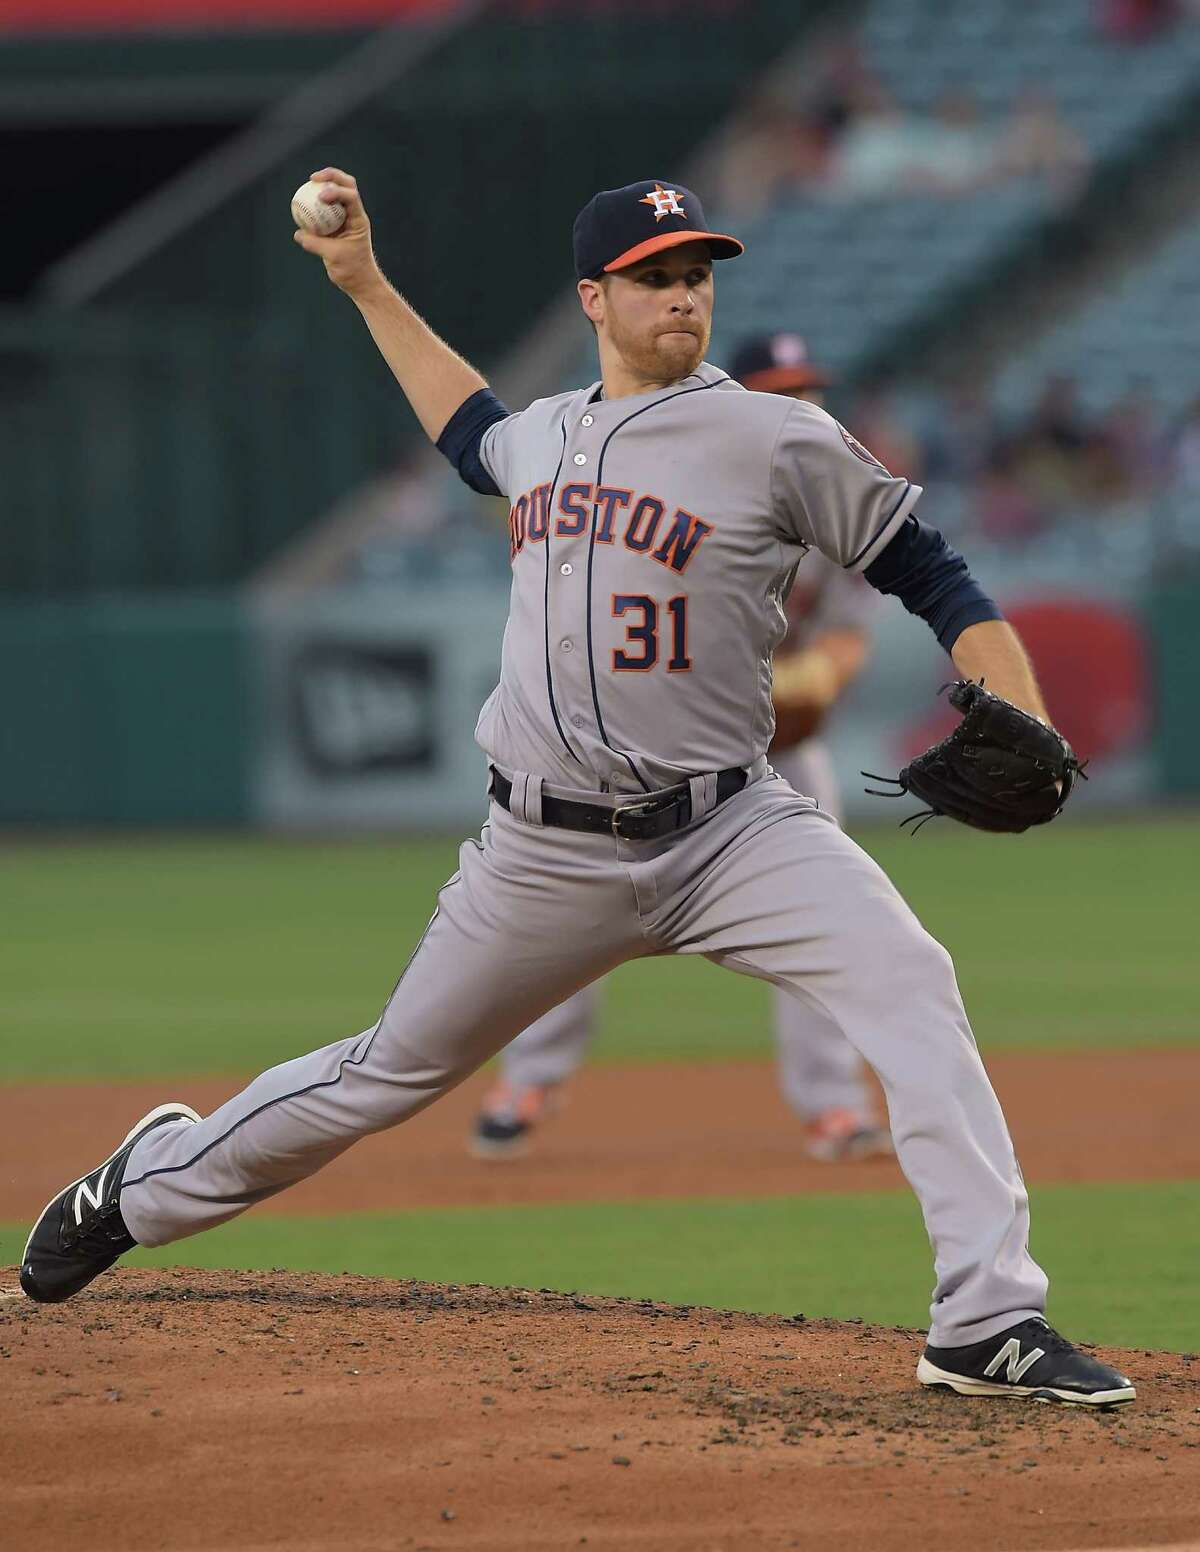 June 27: Astros 4, Angels 2 ANAHEIM, CA - JUNE 27: Collin McHugh #31 of the Houston Astros in the second inning of the game against the Los Angeles Angels at Angel Stadium of Anaheim on June 27, 2016 in Anaheim, California.